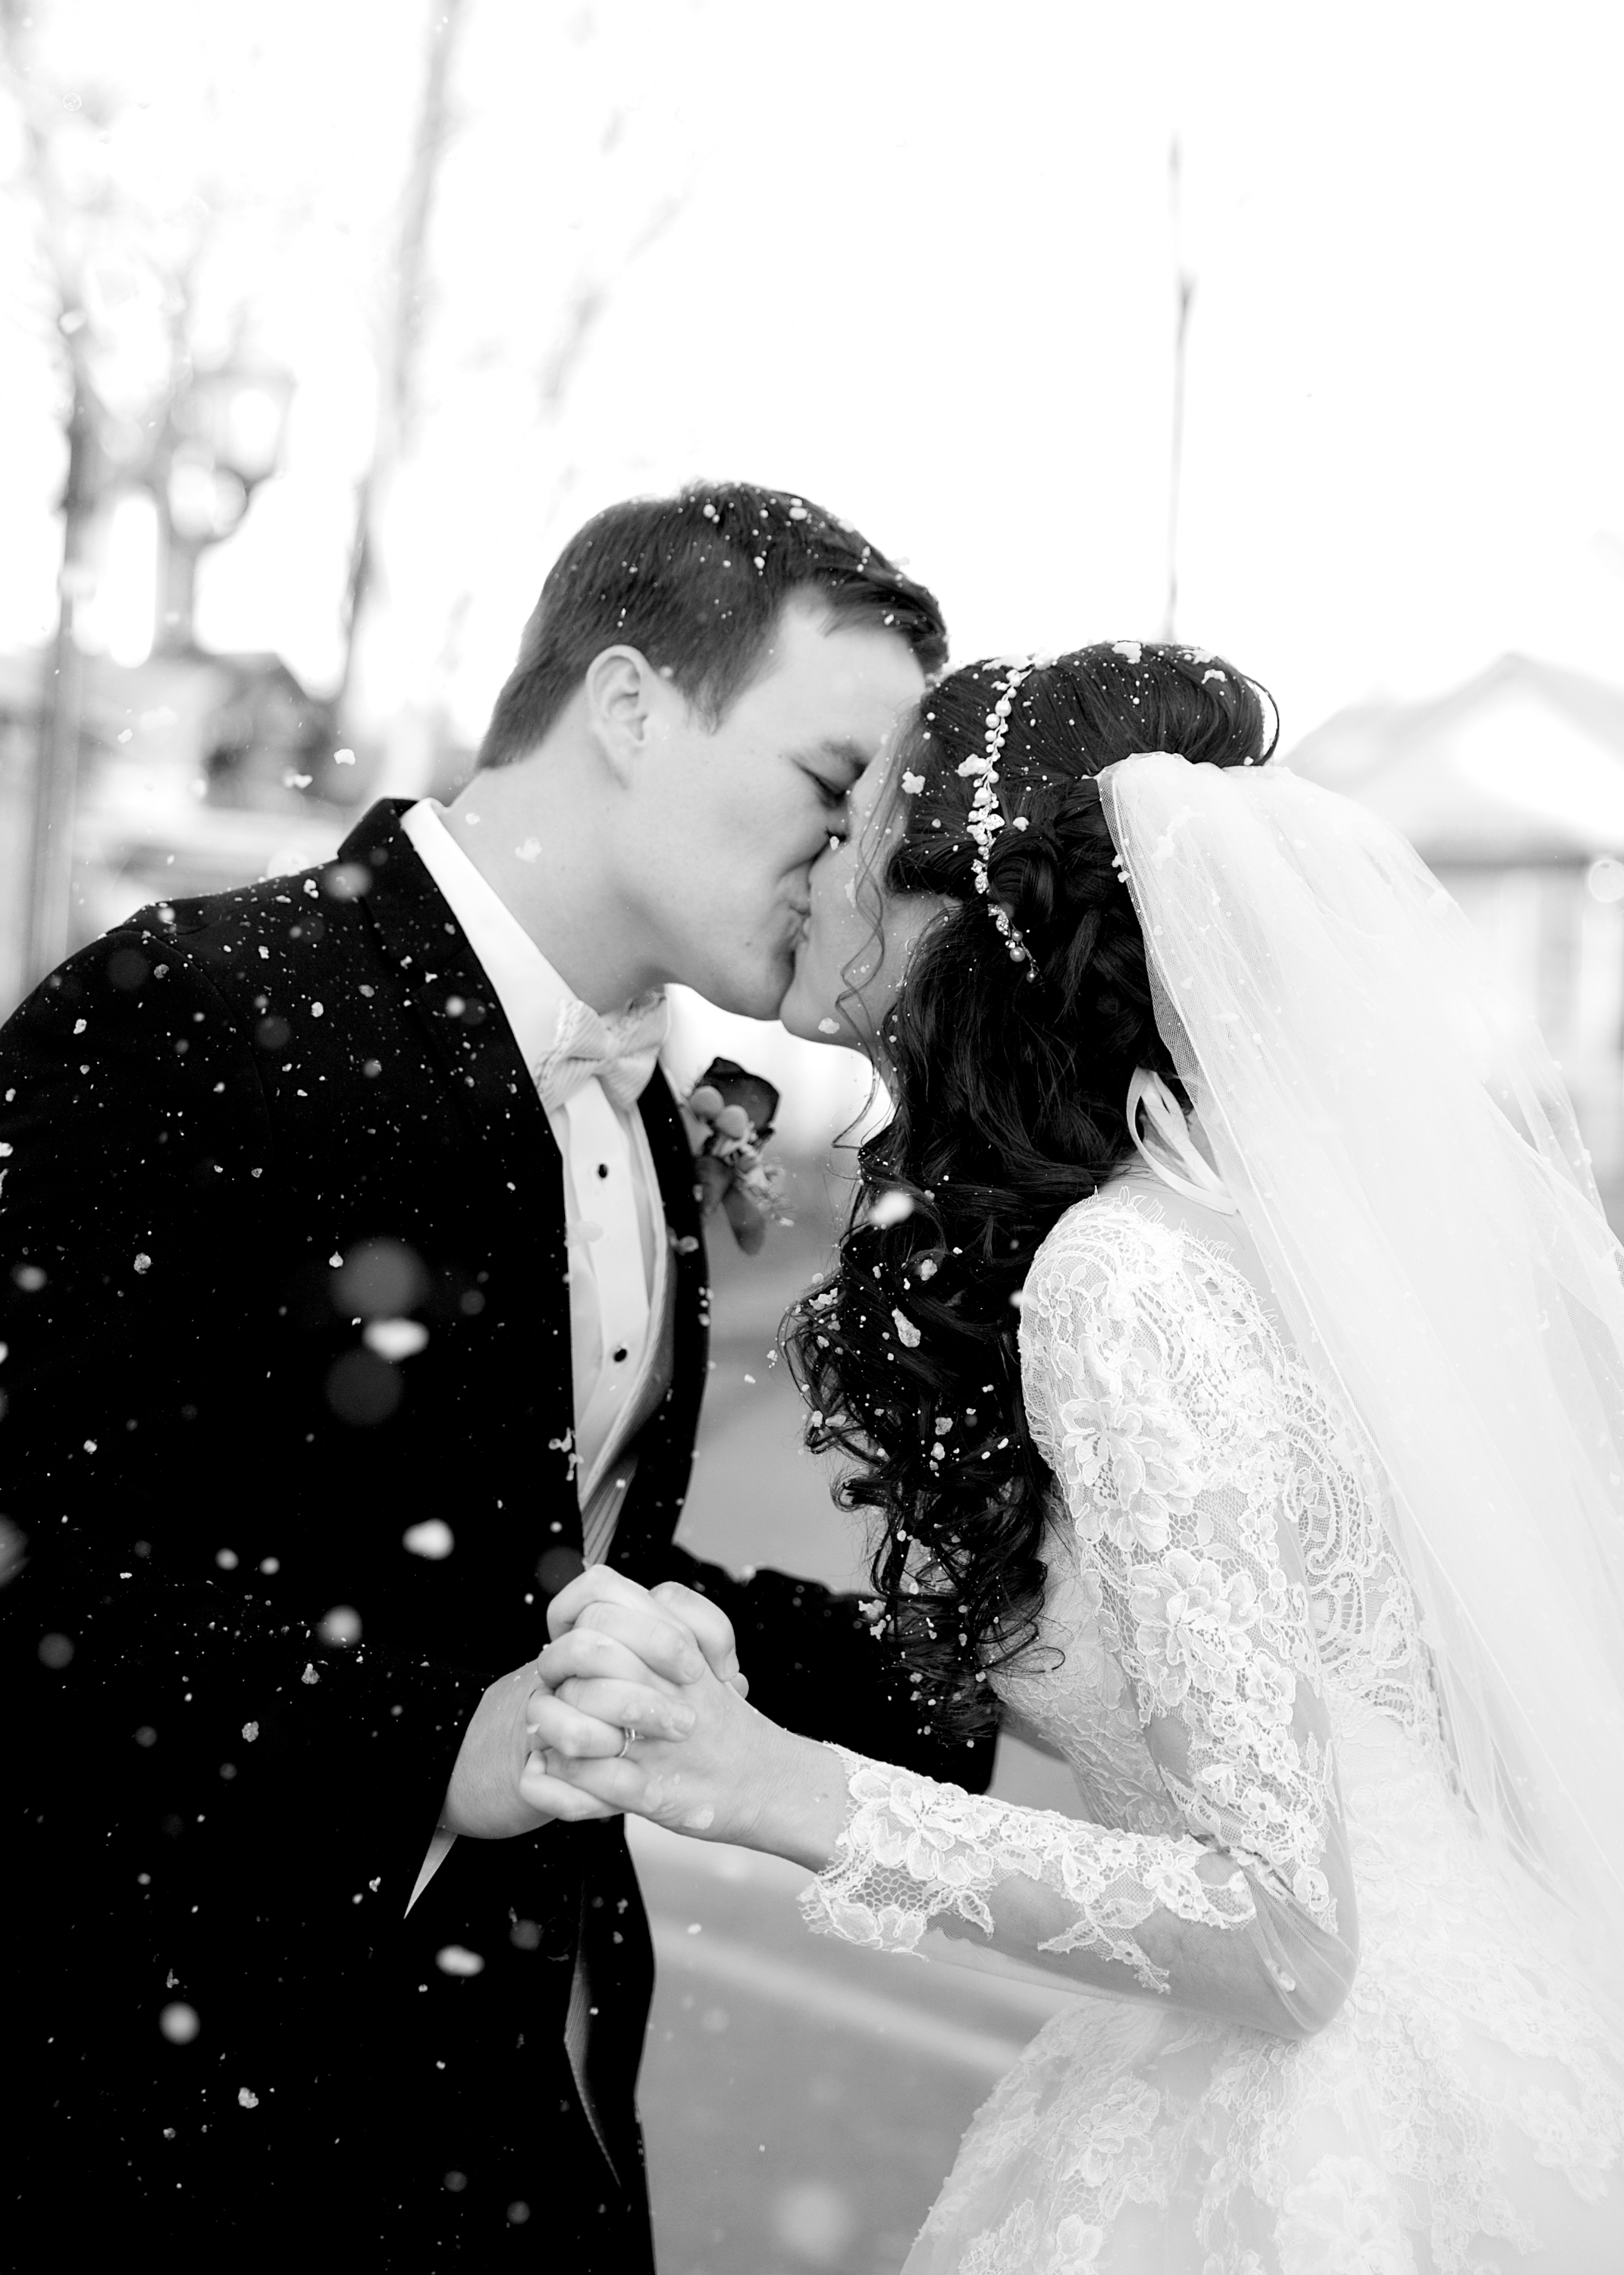 24-kissing-in-snow.jpg